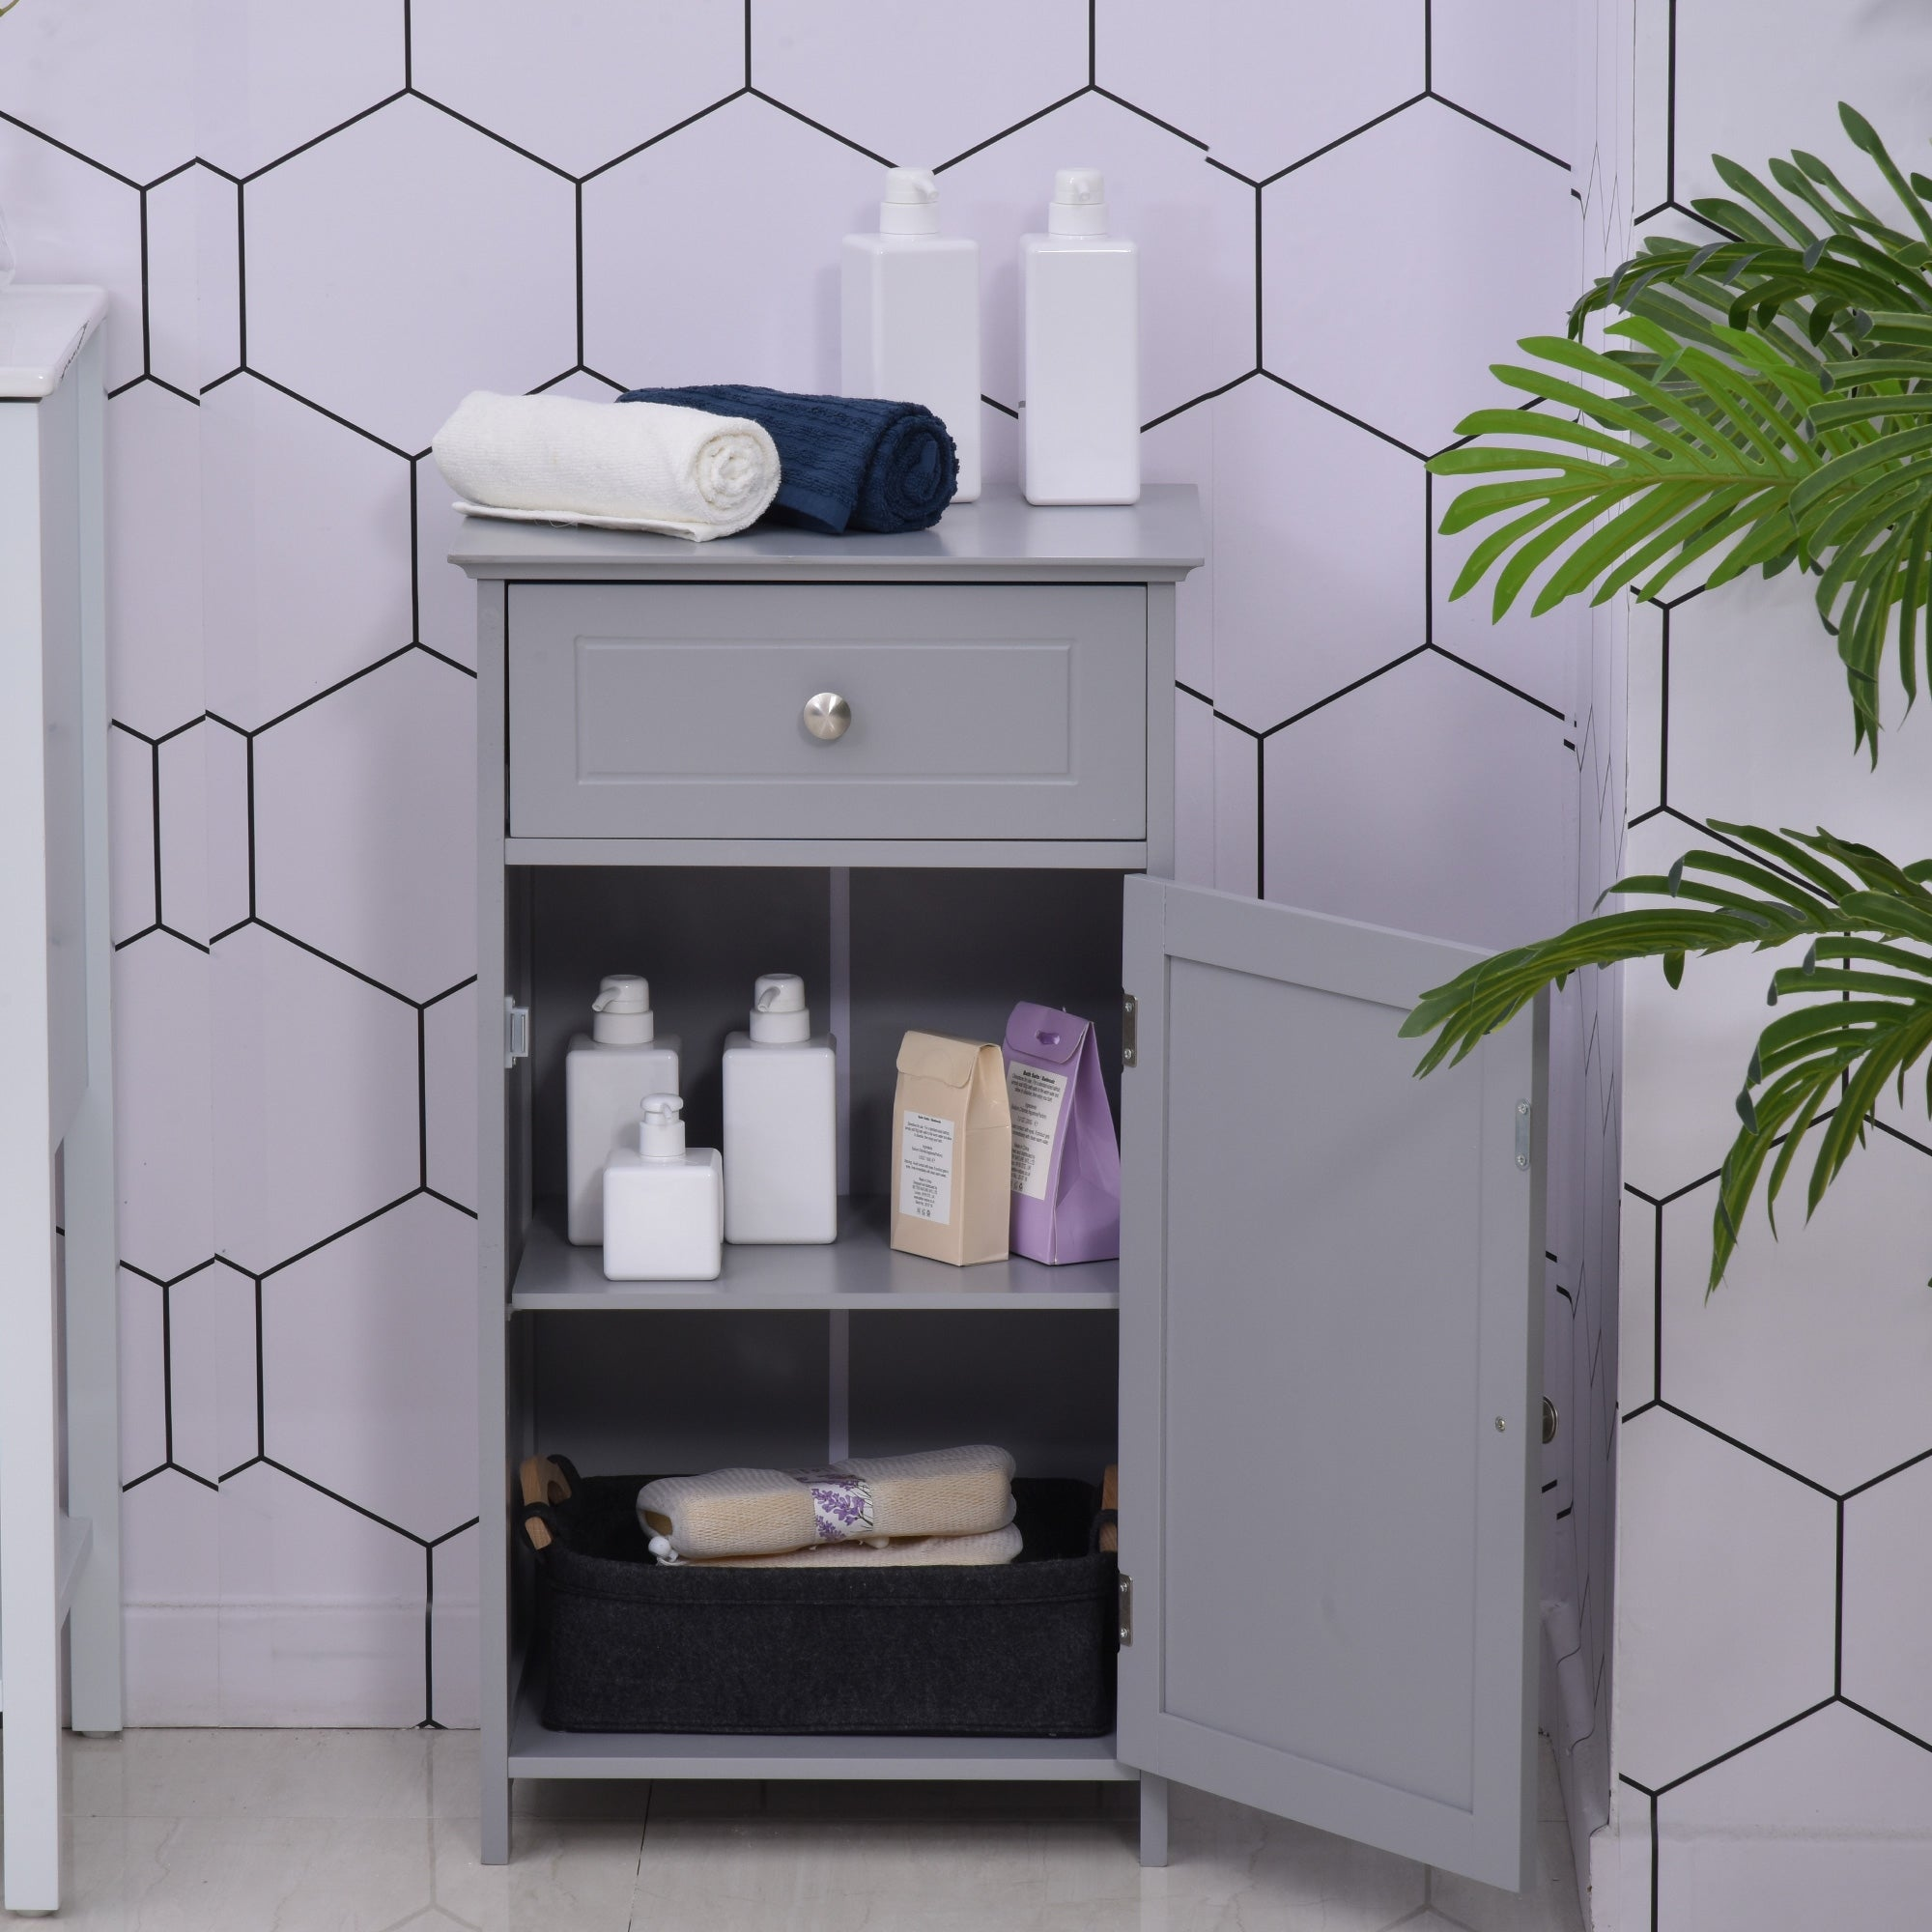 Kleankin Bathroom Cabinet With Drawer And Shelf Toilet Vanity Cabinet For Toilet Paper Towels Or Shampoo Grey Overstock 32464590